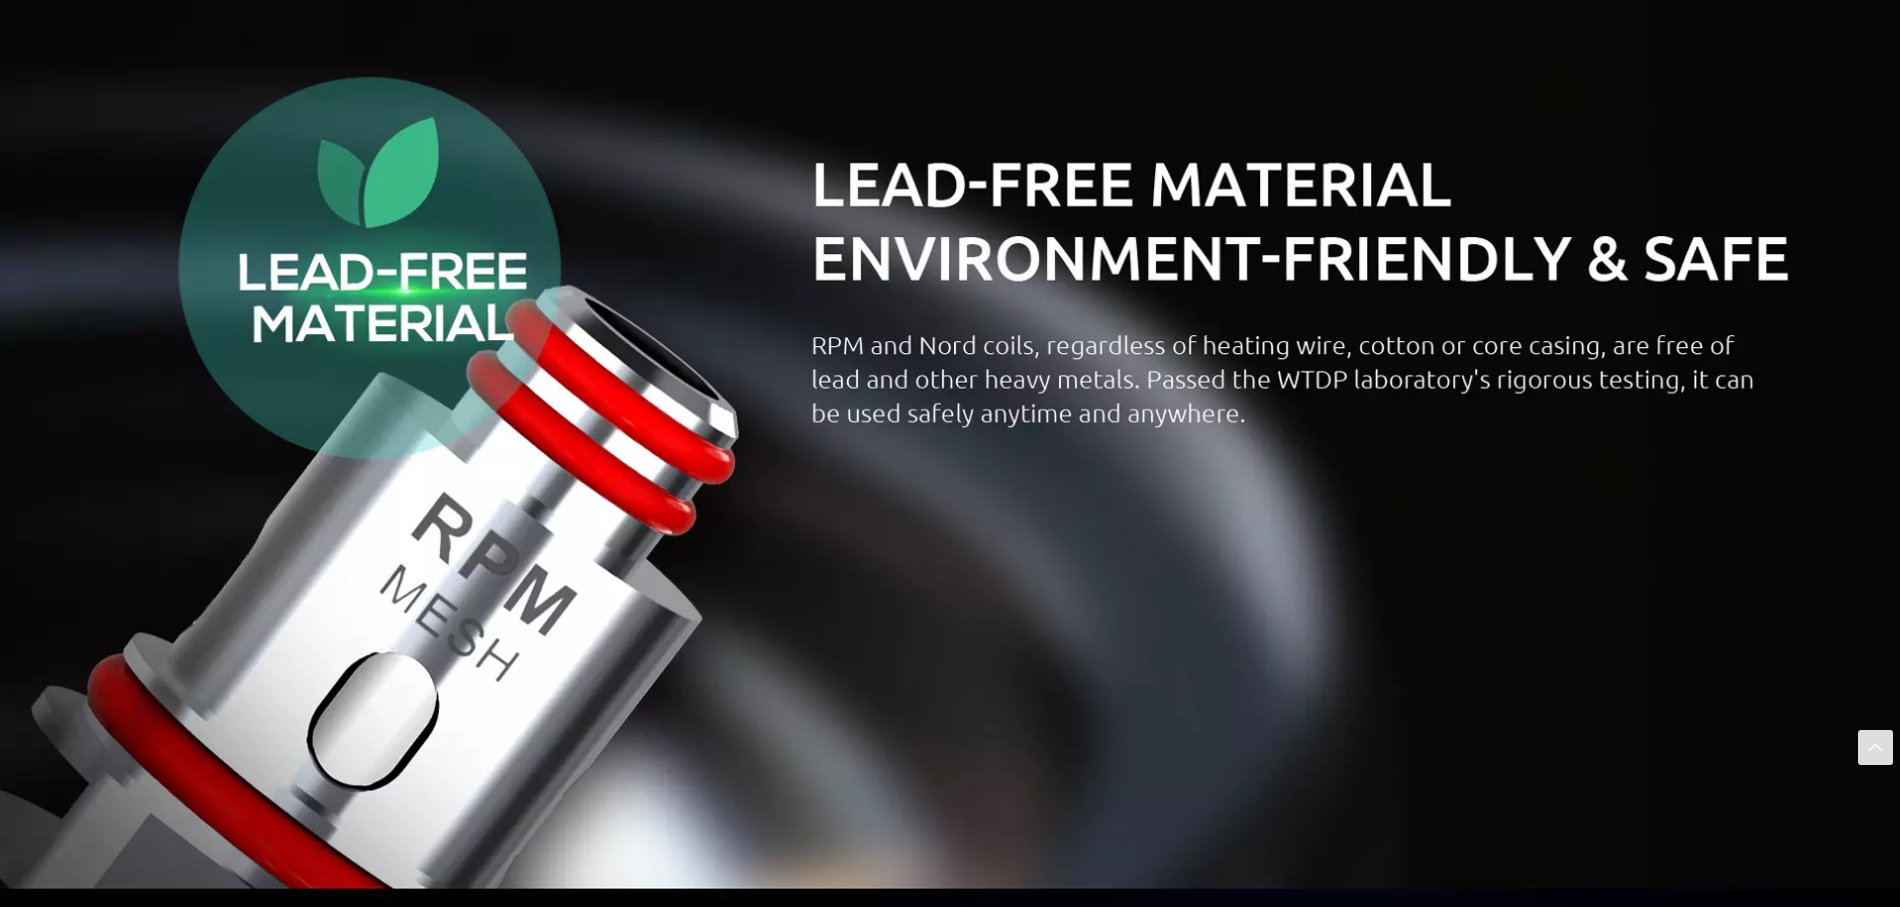 LEAD FREE MATERIAL